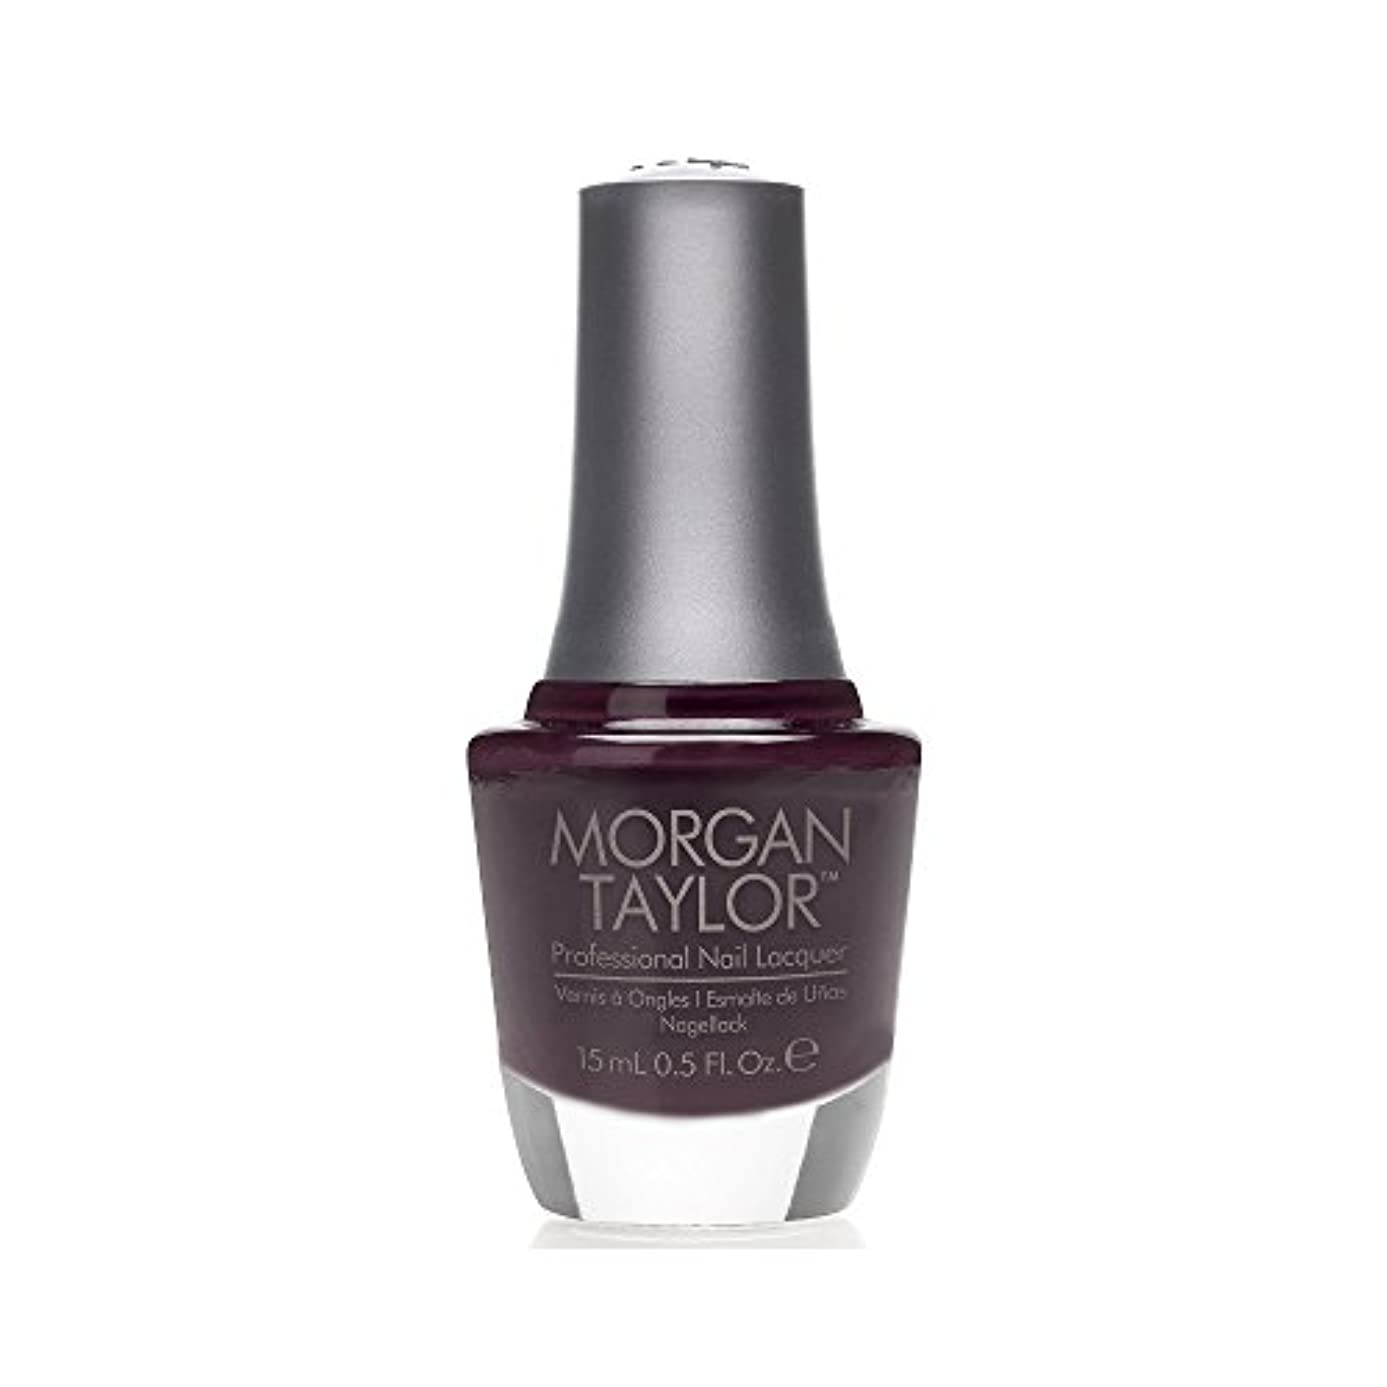 ジョージエリオット寝てるグレードMorgan Taylor - Professional Nail Lacquer - Well Spent - 15 mL / 0.5oz